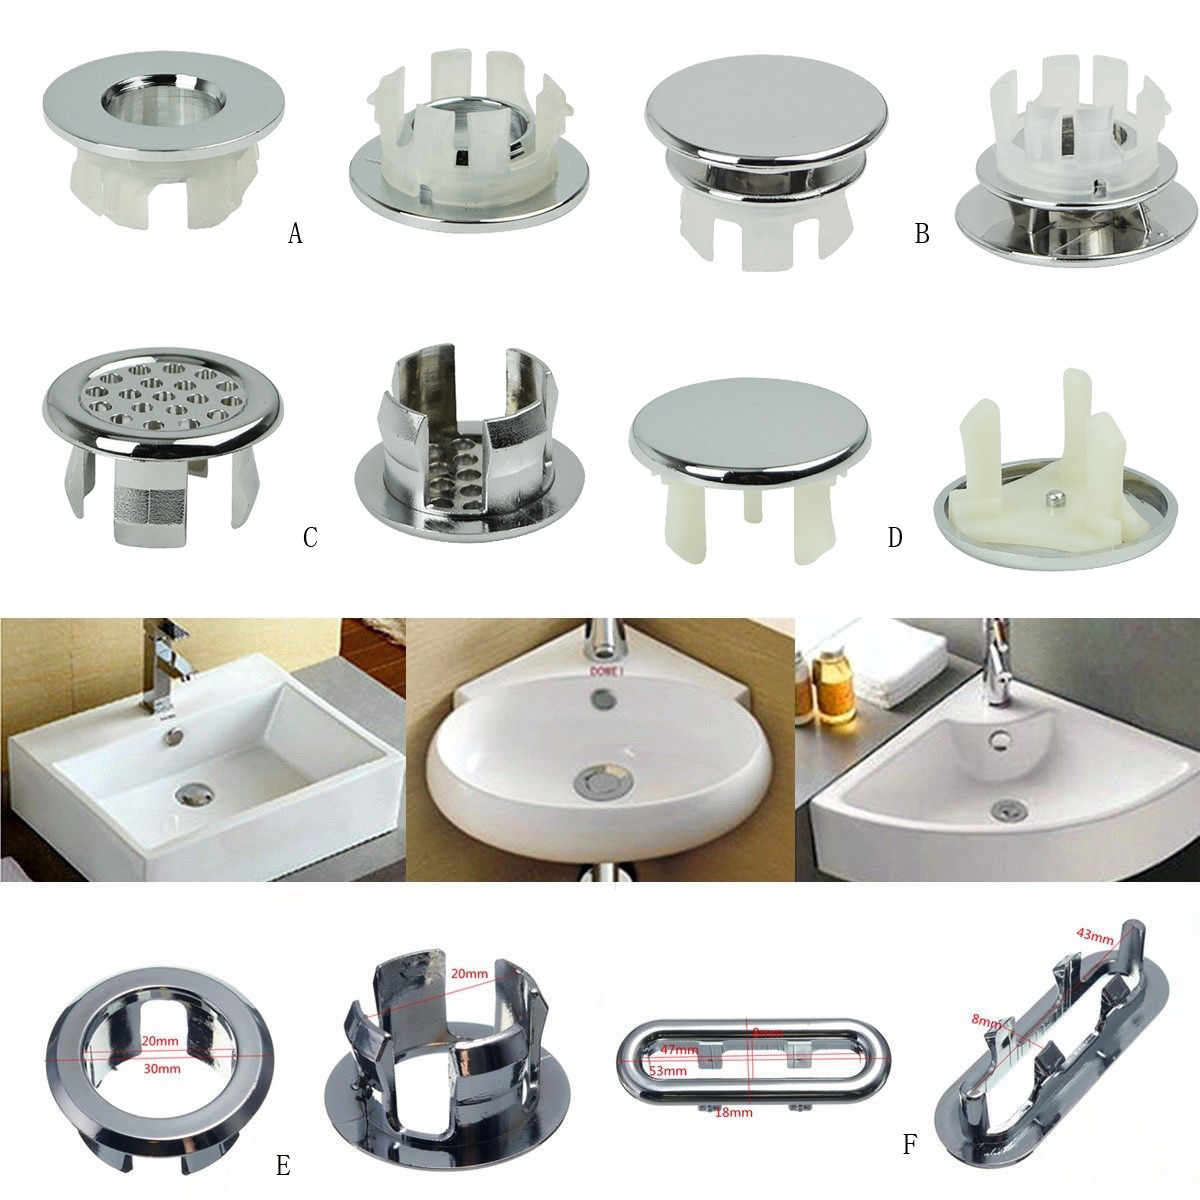 6 Basin Sink Round Overflow Cover Ring Insert Replacement Tidy Chrome Trim Bathroom Accessories #F